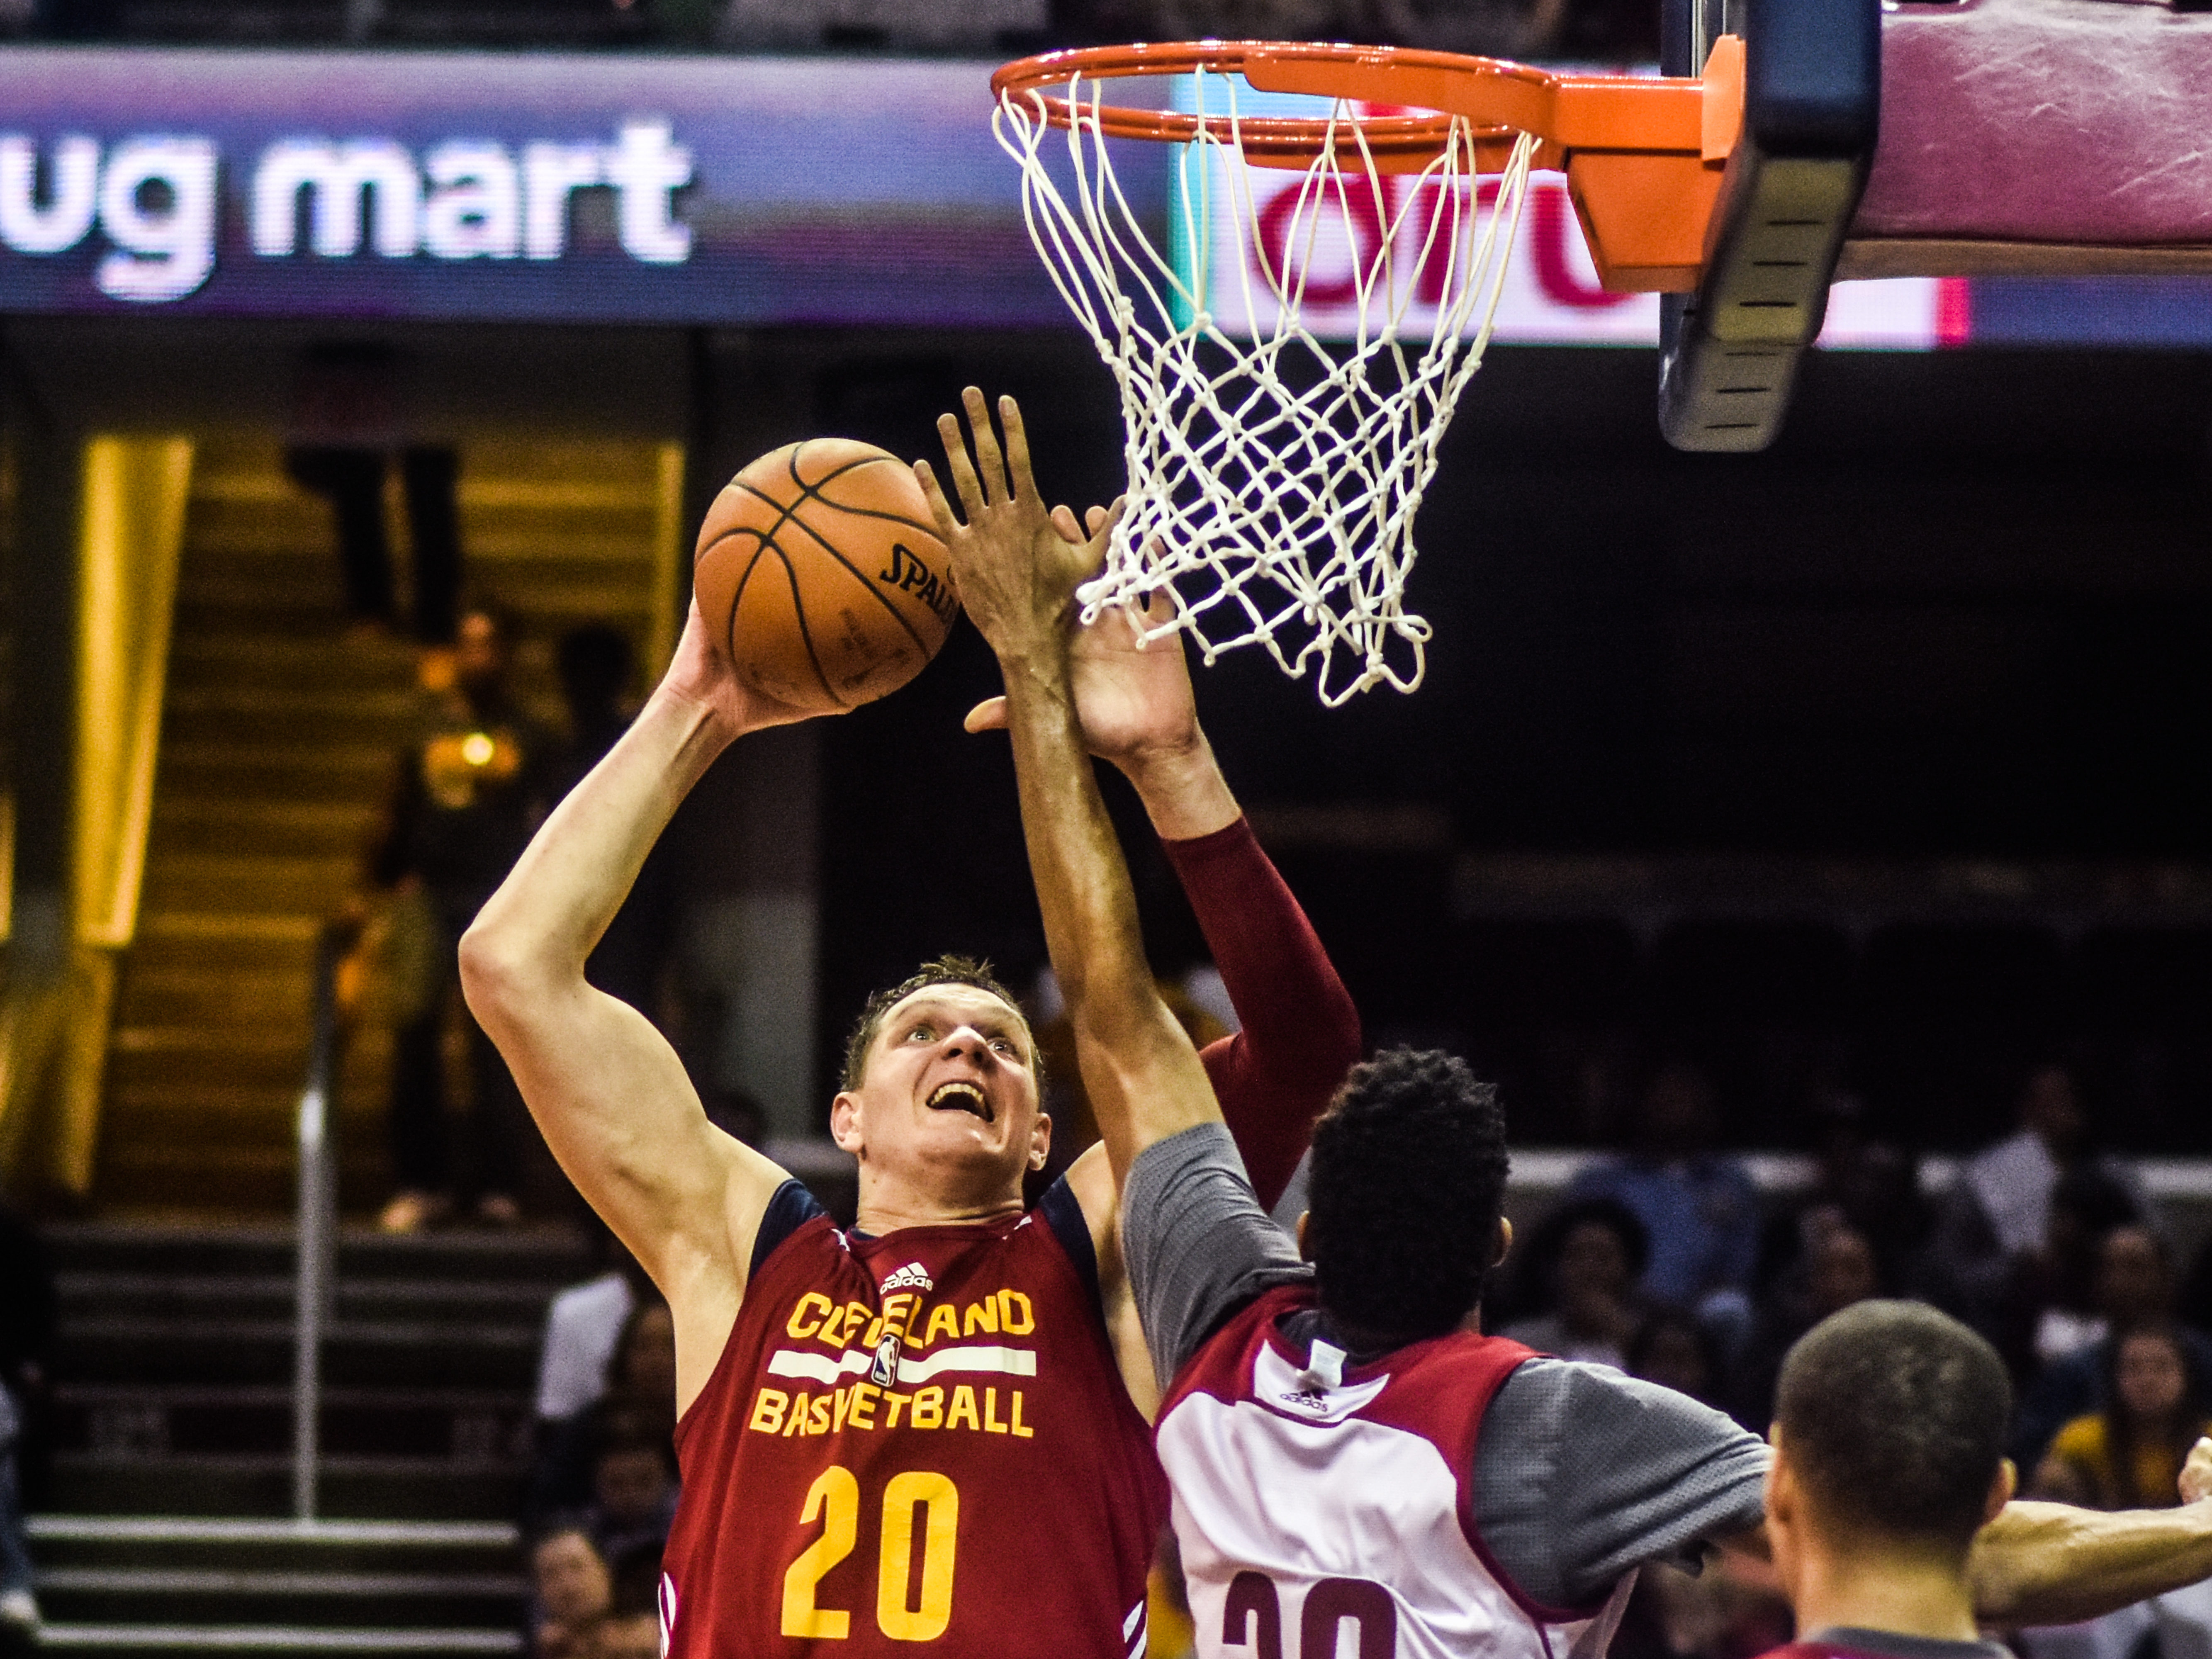 Timofey Mozgov - Cleveland Cavaliers - Eric Drost - Flickr